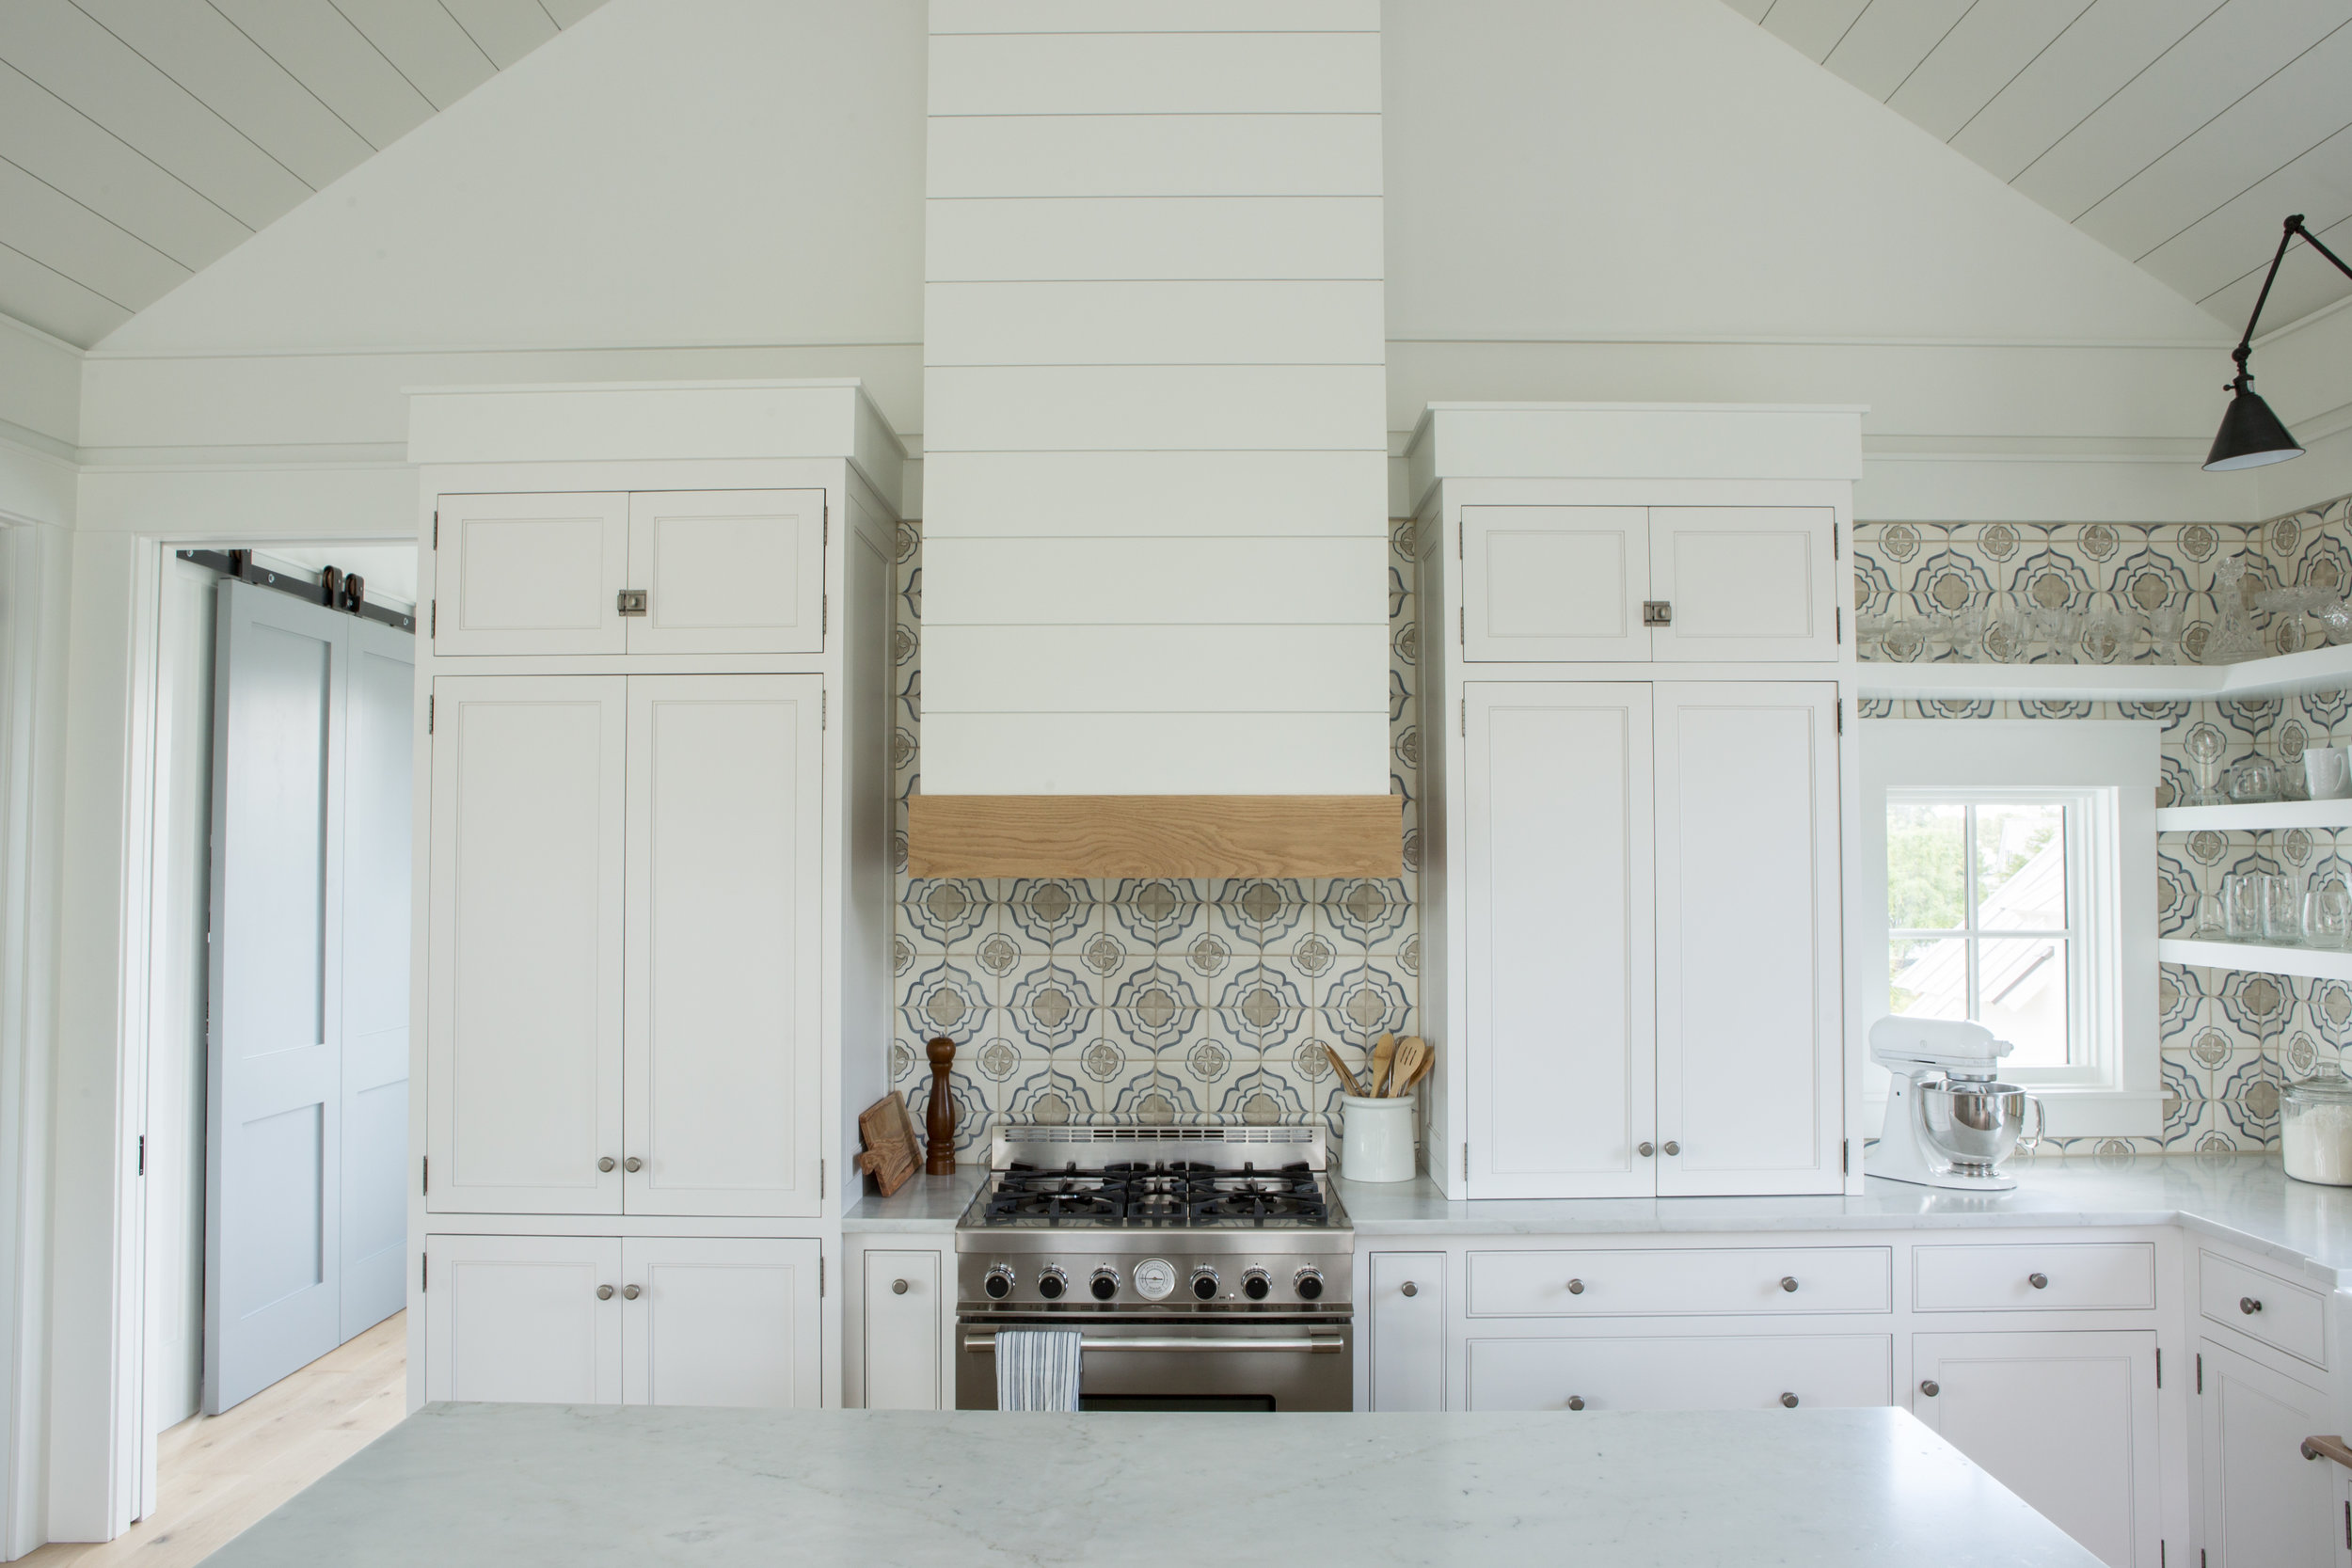 Kitchen with shiplap walls and modern farmhouse style. Coastal Cottage Interior Design Inspiration - Part 1 {Get the Look!} #kitchen #farmhousekitchen #shiplap #whitekitchen #coastaldecor #cottagestyle